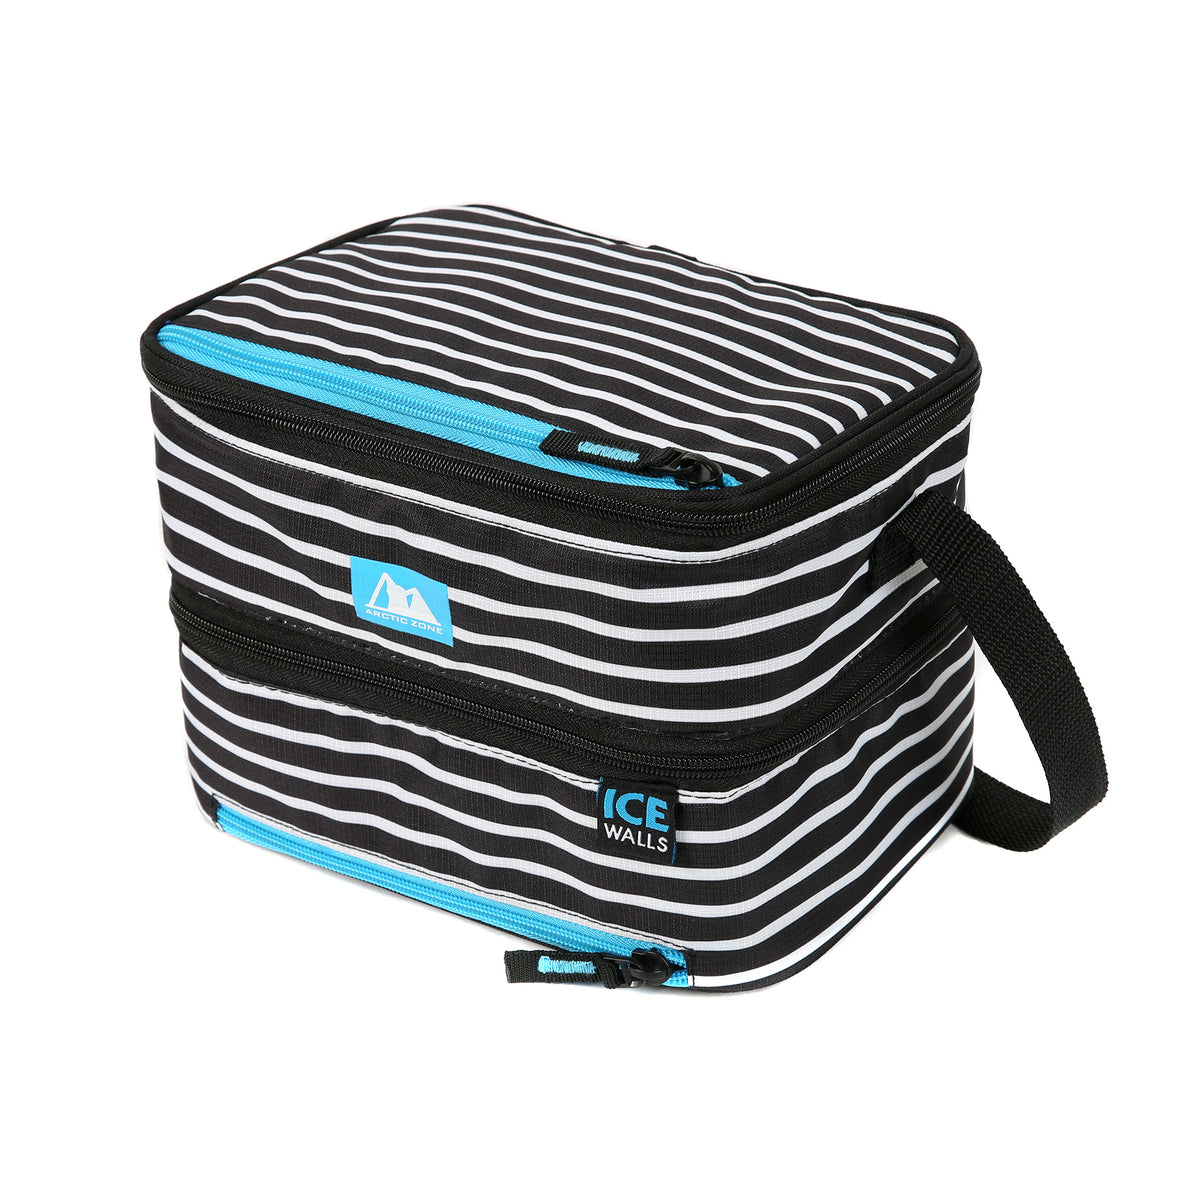 Dual Compartment Lunch Bag with 3 Ice Walls®Arctic Zone® Ice Walls® Dual Compartment Lunch Pack - Classic Stripes - Front, closed